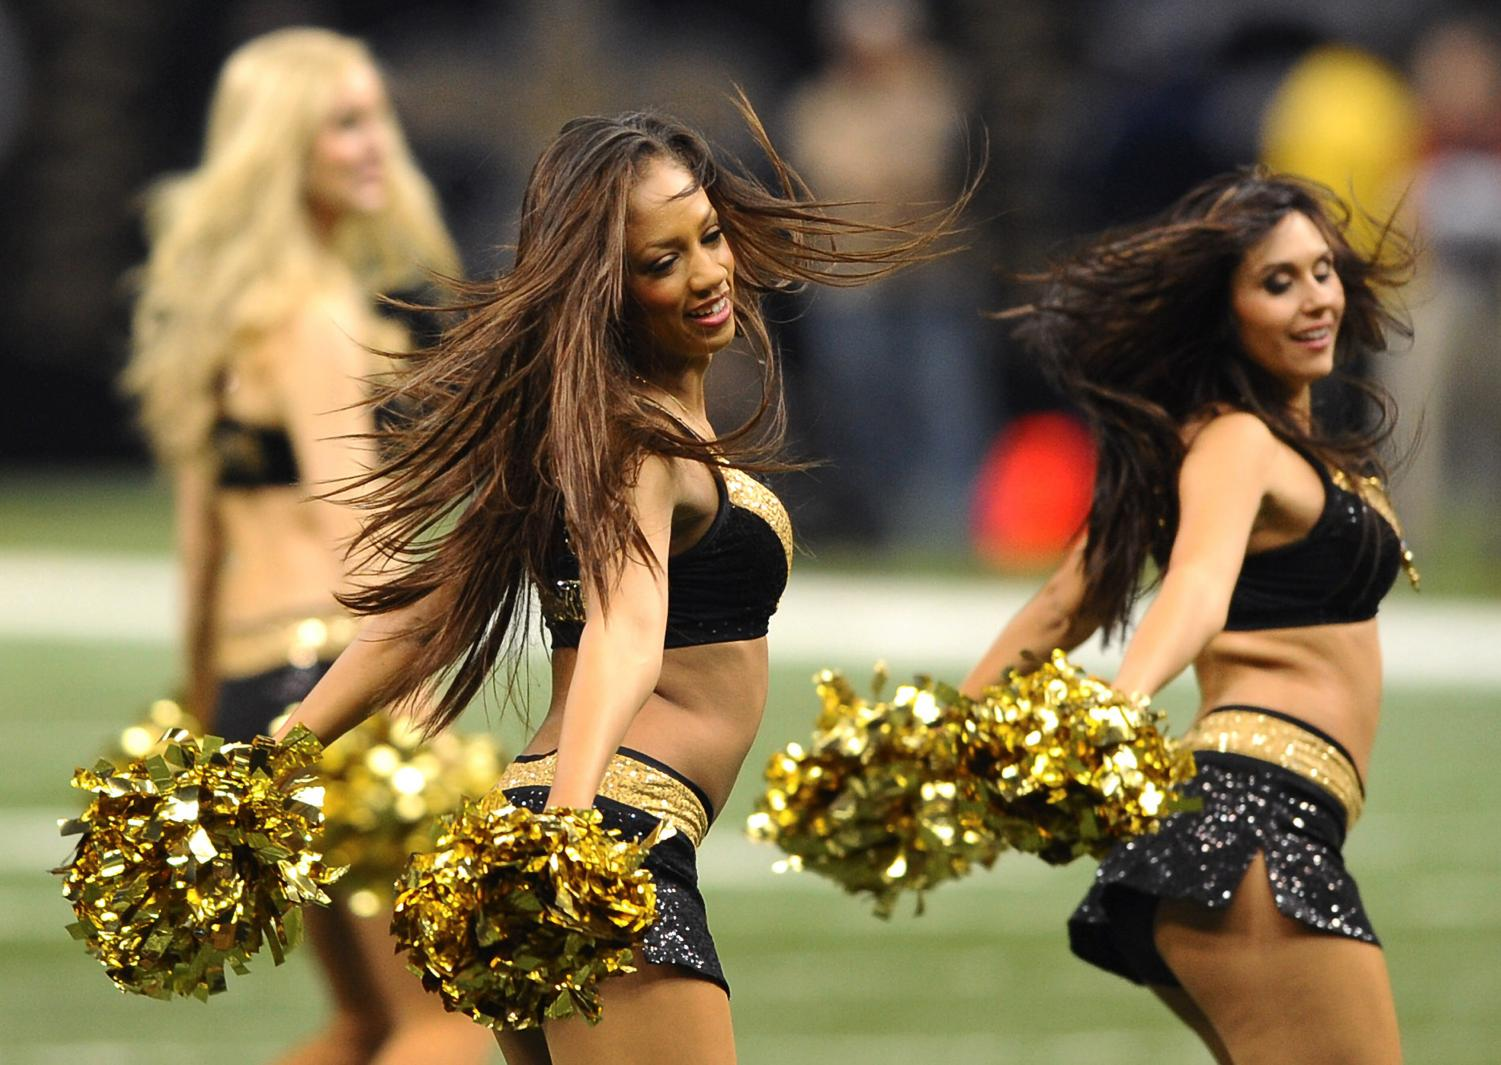 New Orleans Saints' cheerleaders cheer at a football game between the New Orleans Saints and the Carolina Panthers in Louisiana. (Jeff Siner/Charlotte Observer/MCT)